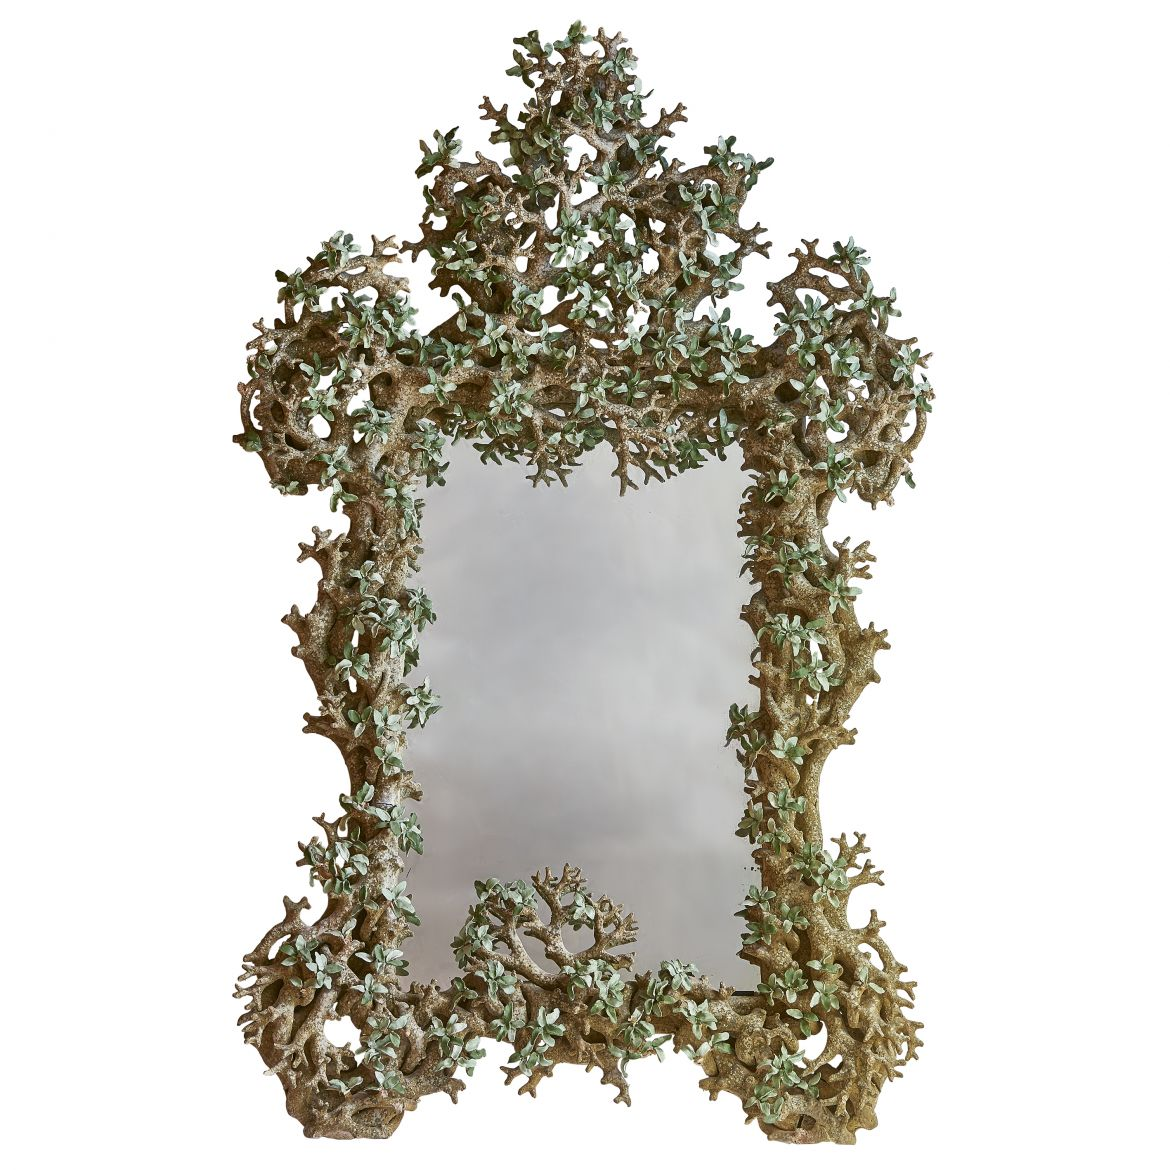 Grotto Style Mirror by Edouard Chevalier